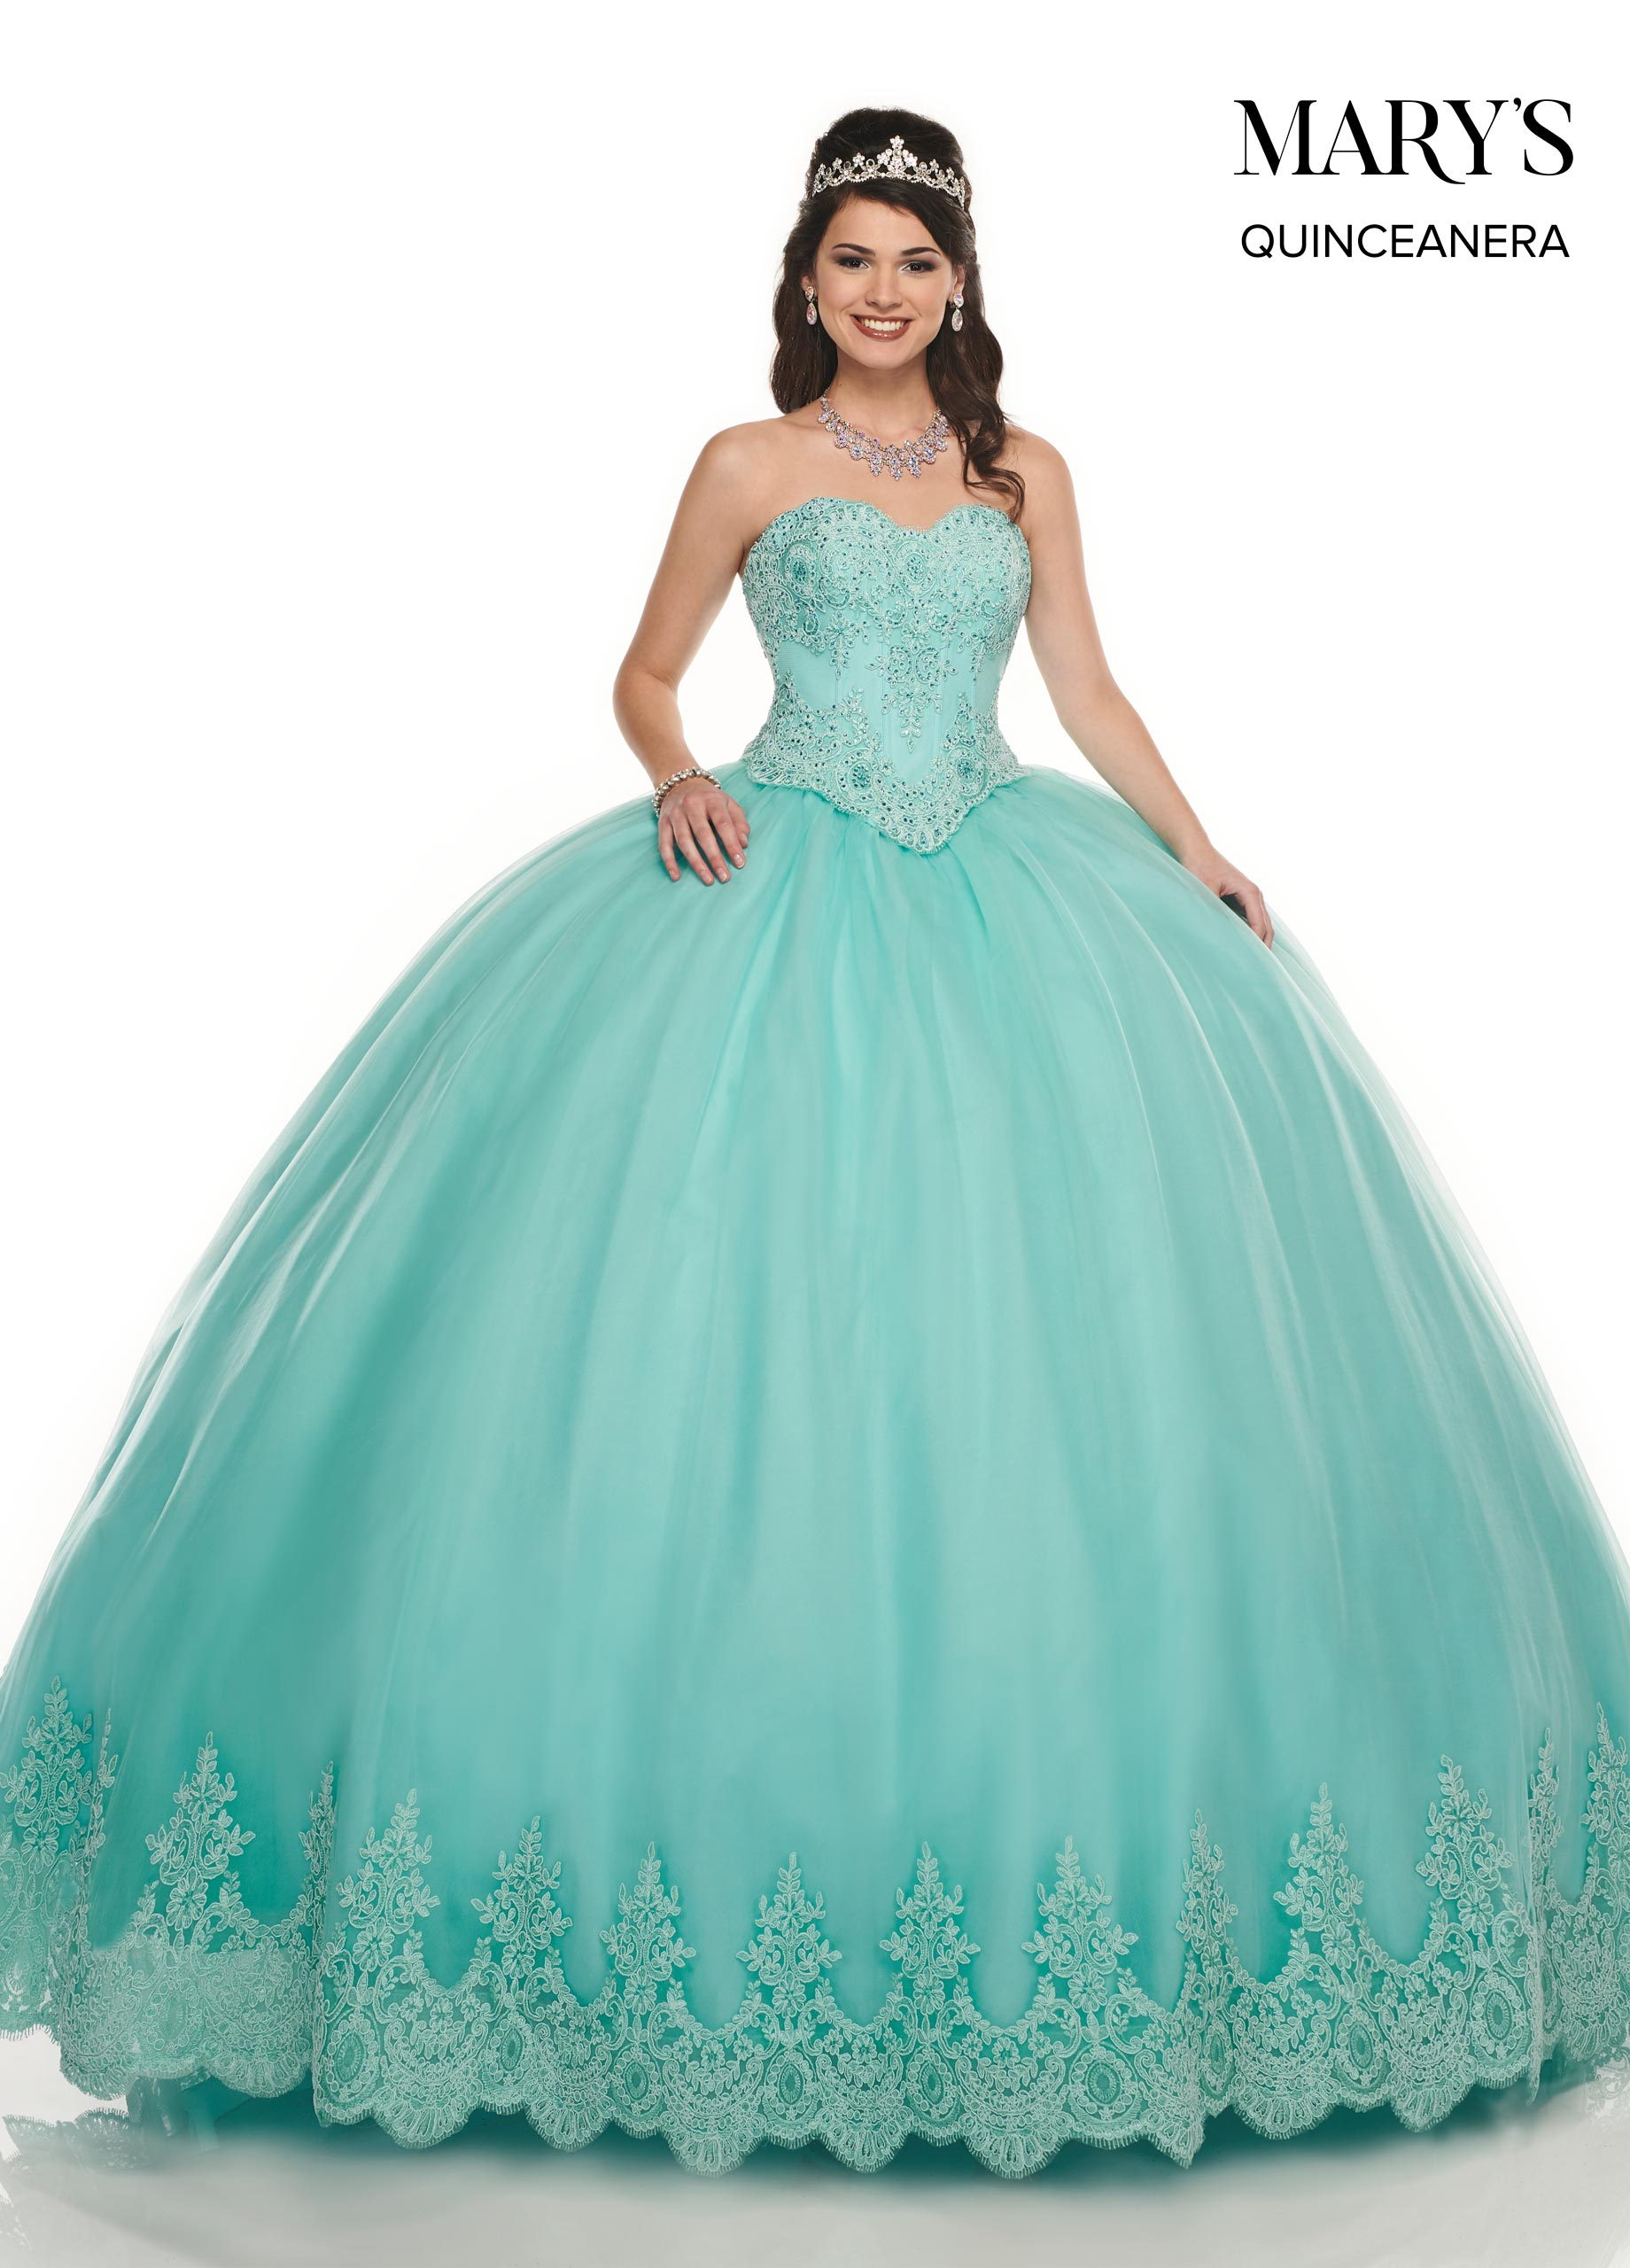 Marys Quinceanera Dresses | Mary's Quinceanera | Style - MQ2086